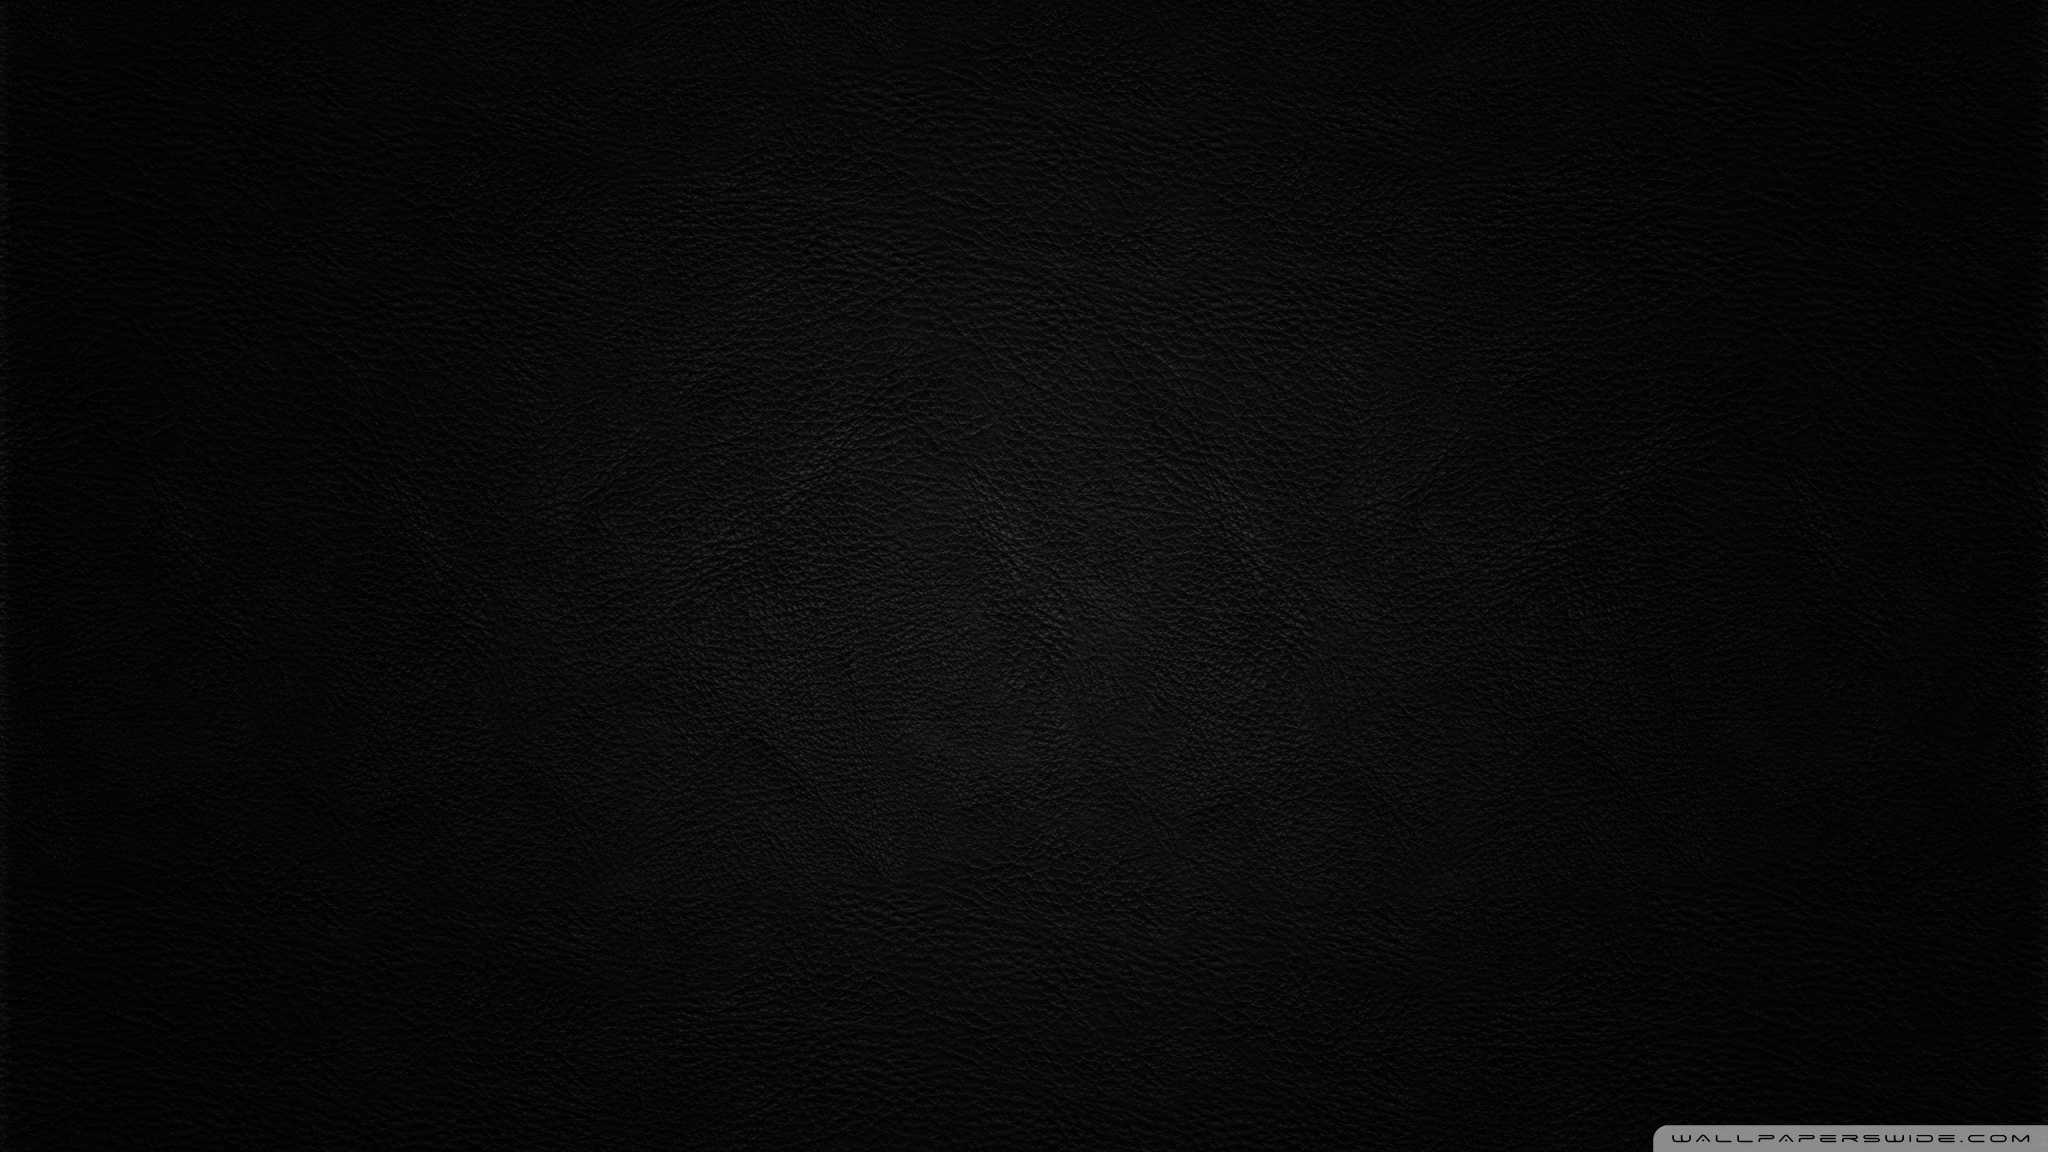 Black background leather wallpaper 2048x1152jpg   Penumbra Wiki 2048x1152